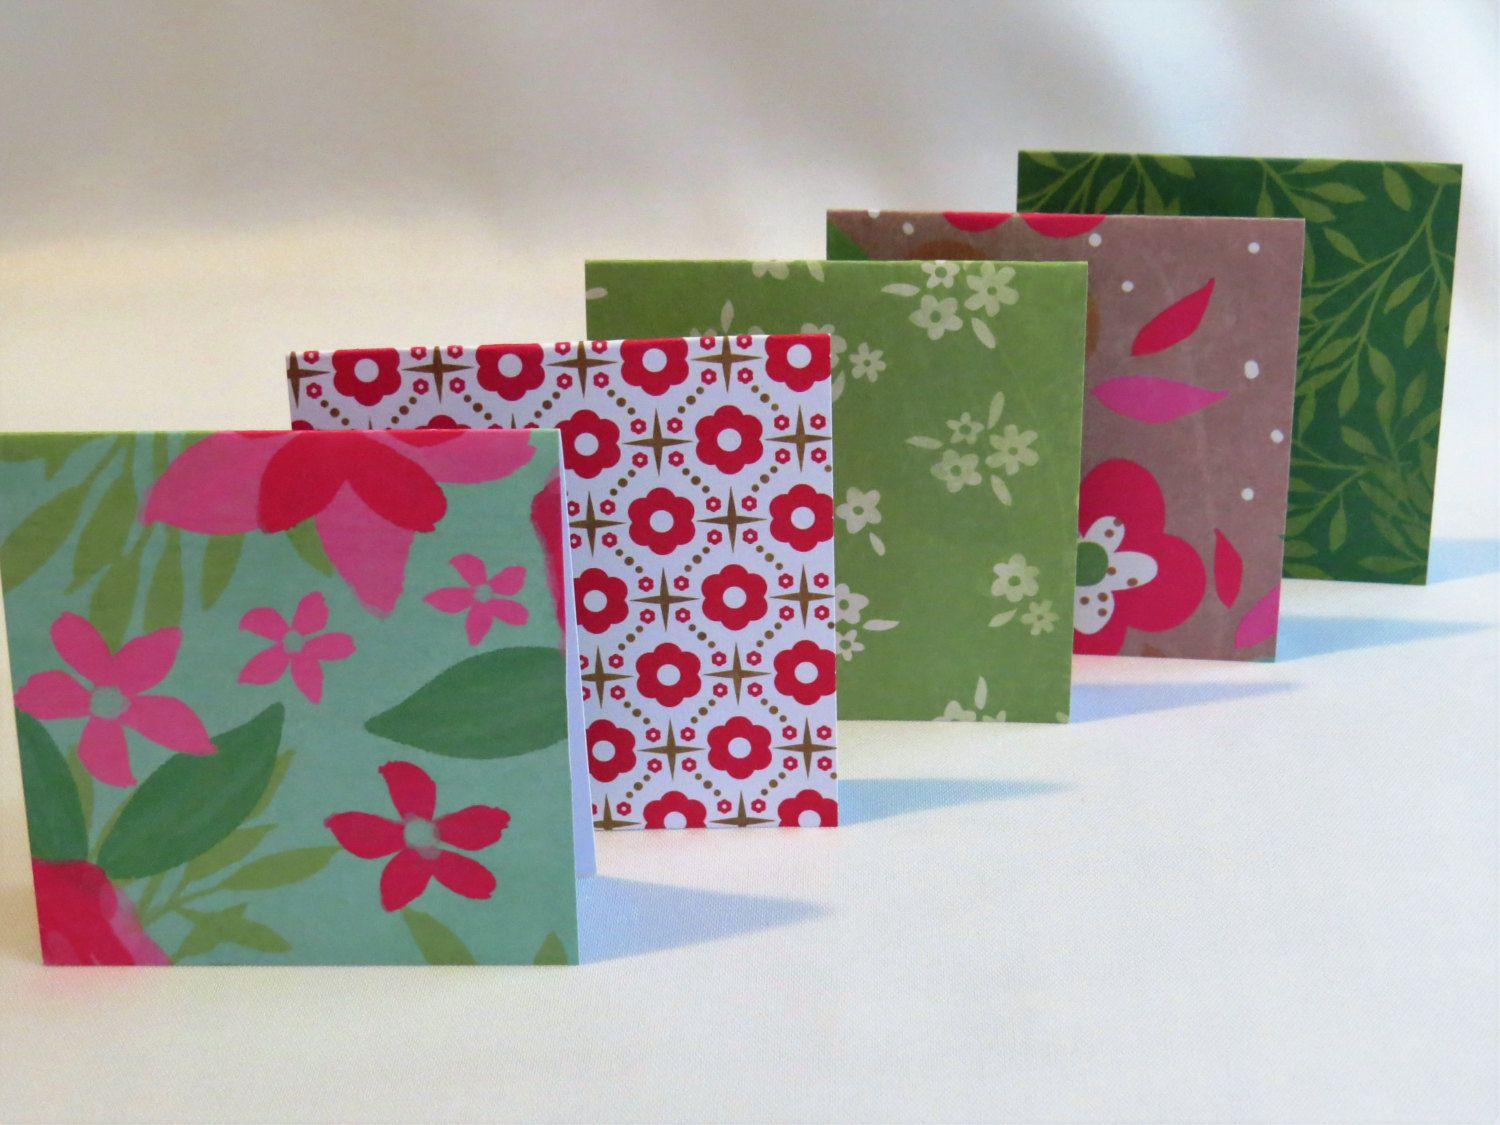 Handmade mini greeting card set of 5 floral patterns small cards handmade mini greeting card set of 5 floral patterns small cards birthday cards kristyandbryce Gallery